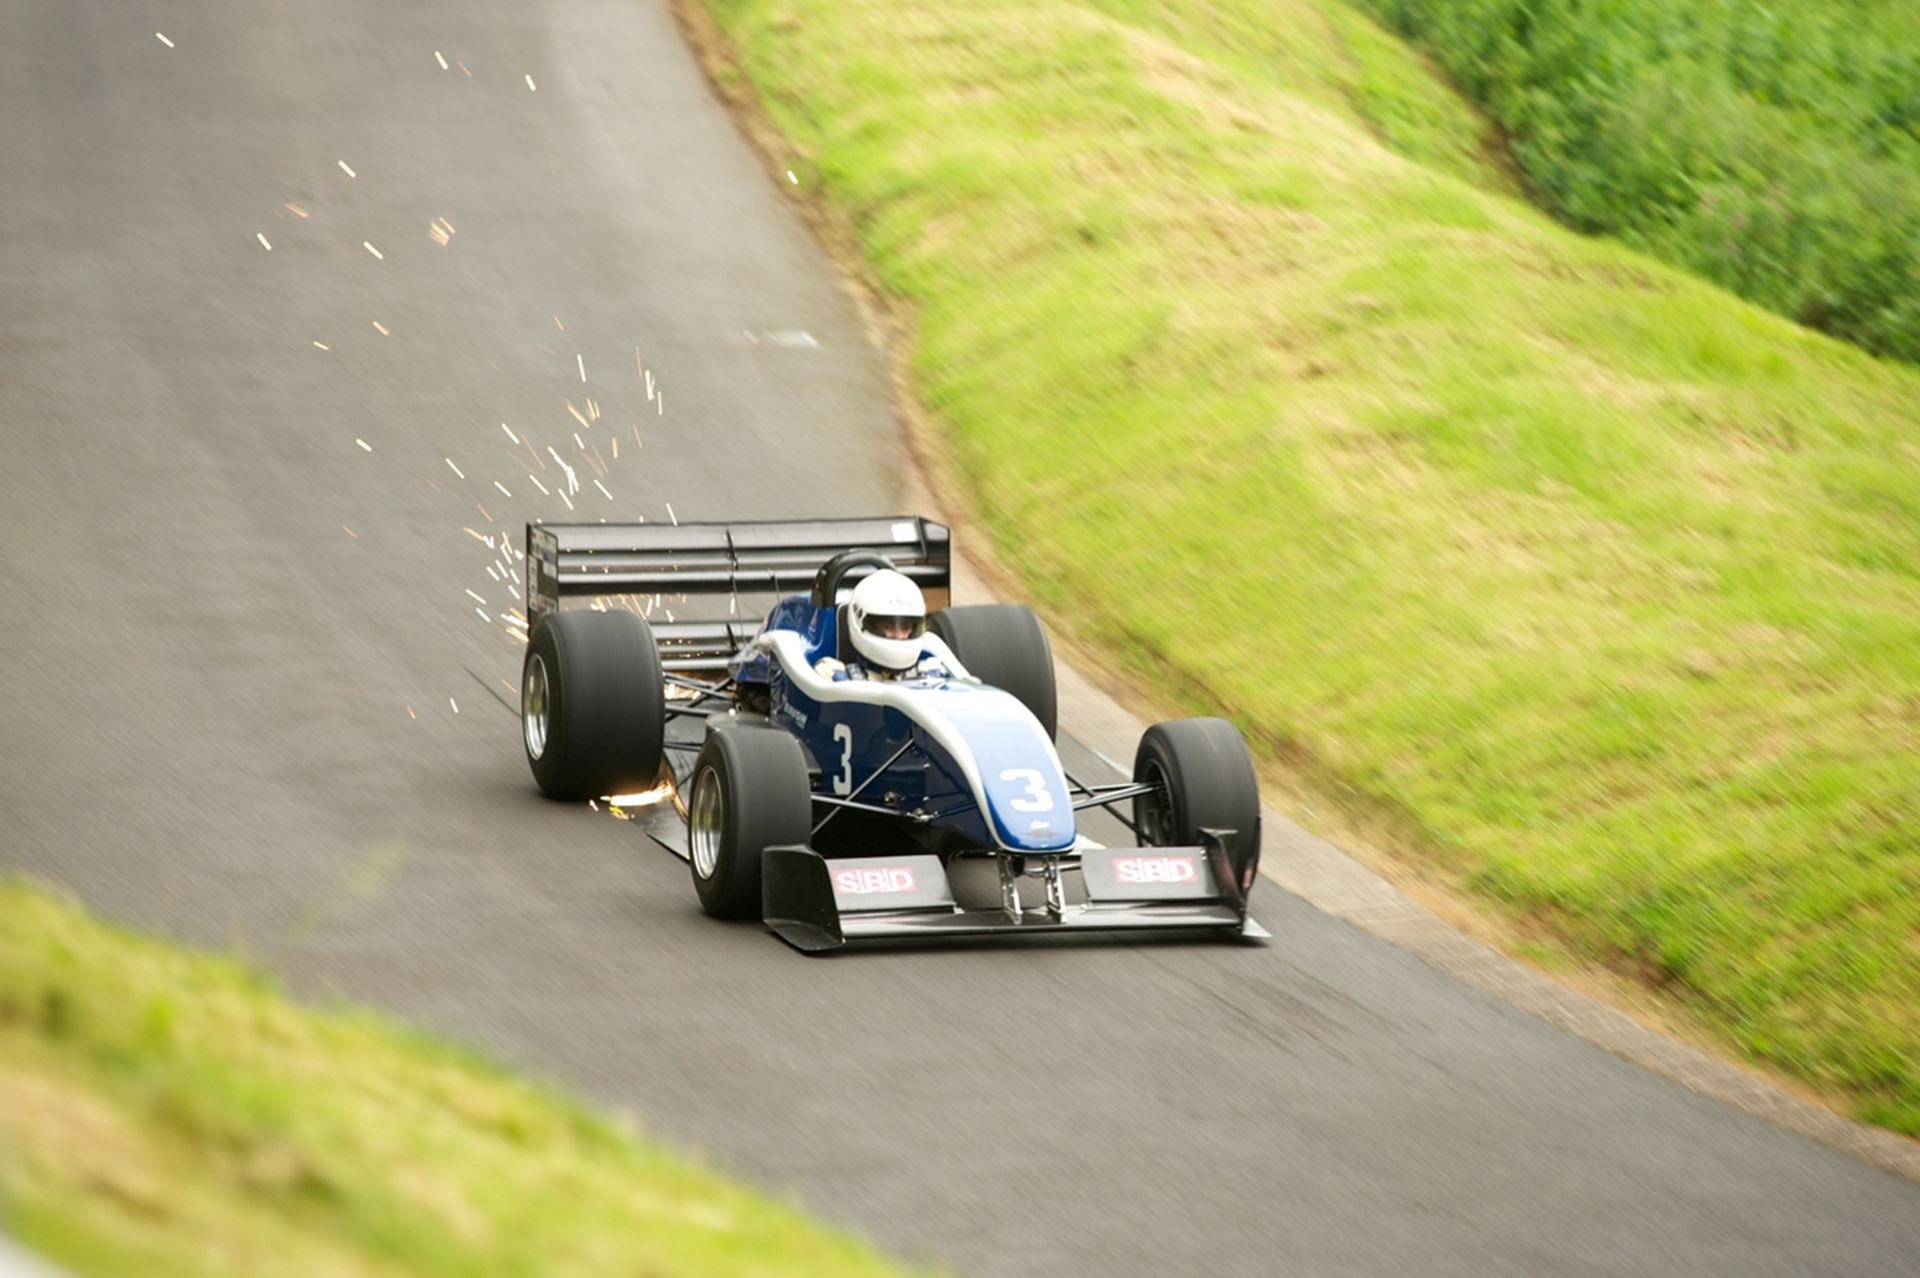 Trevor Willis at Shelsley Walsh